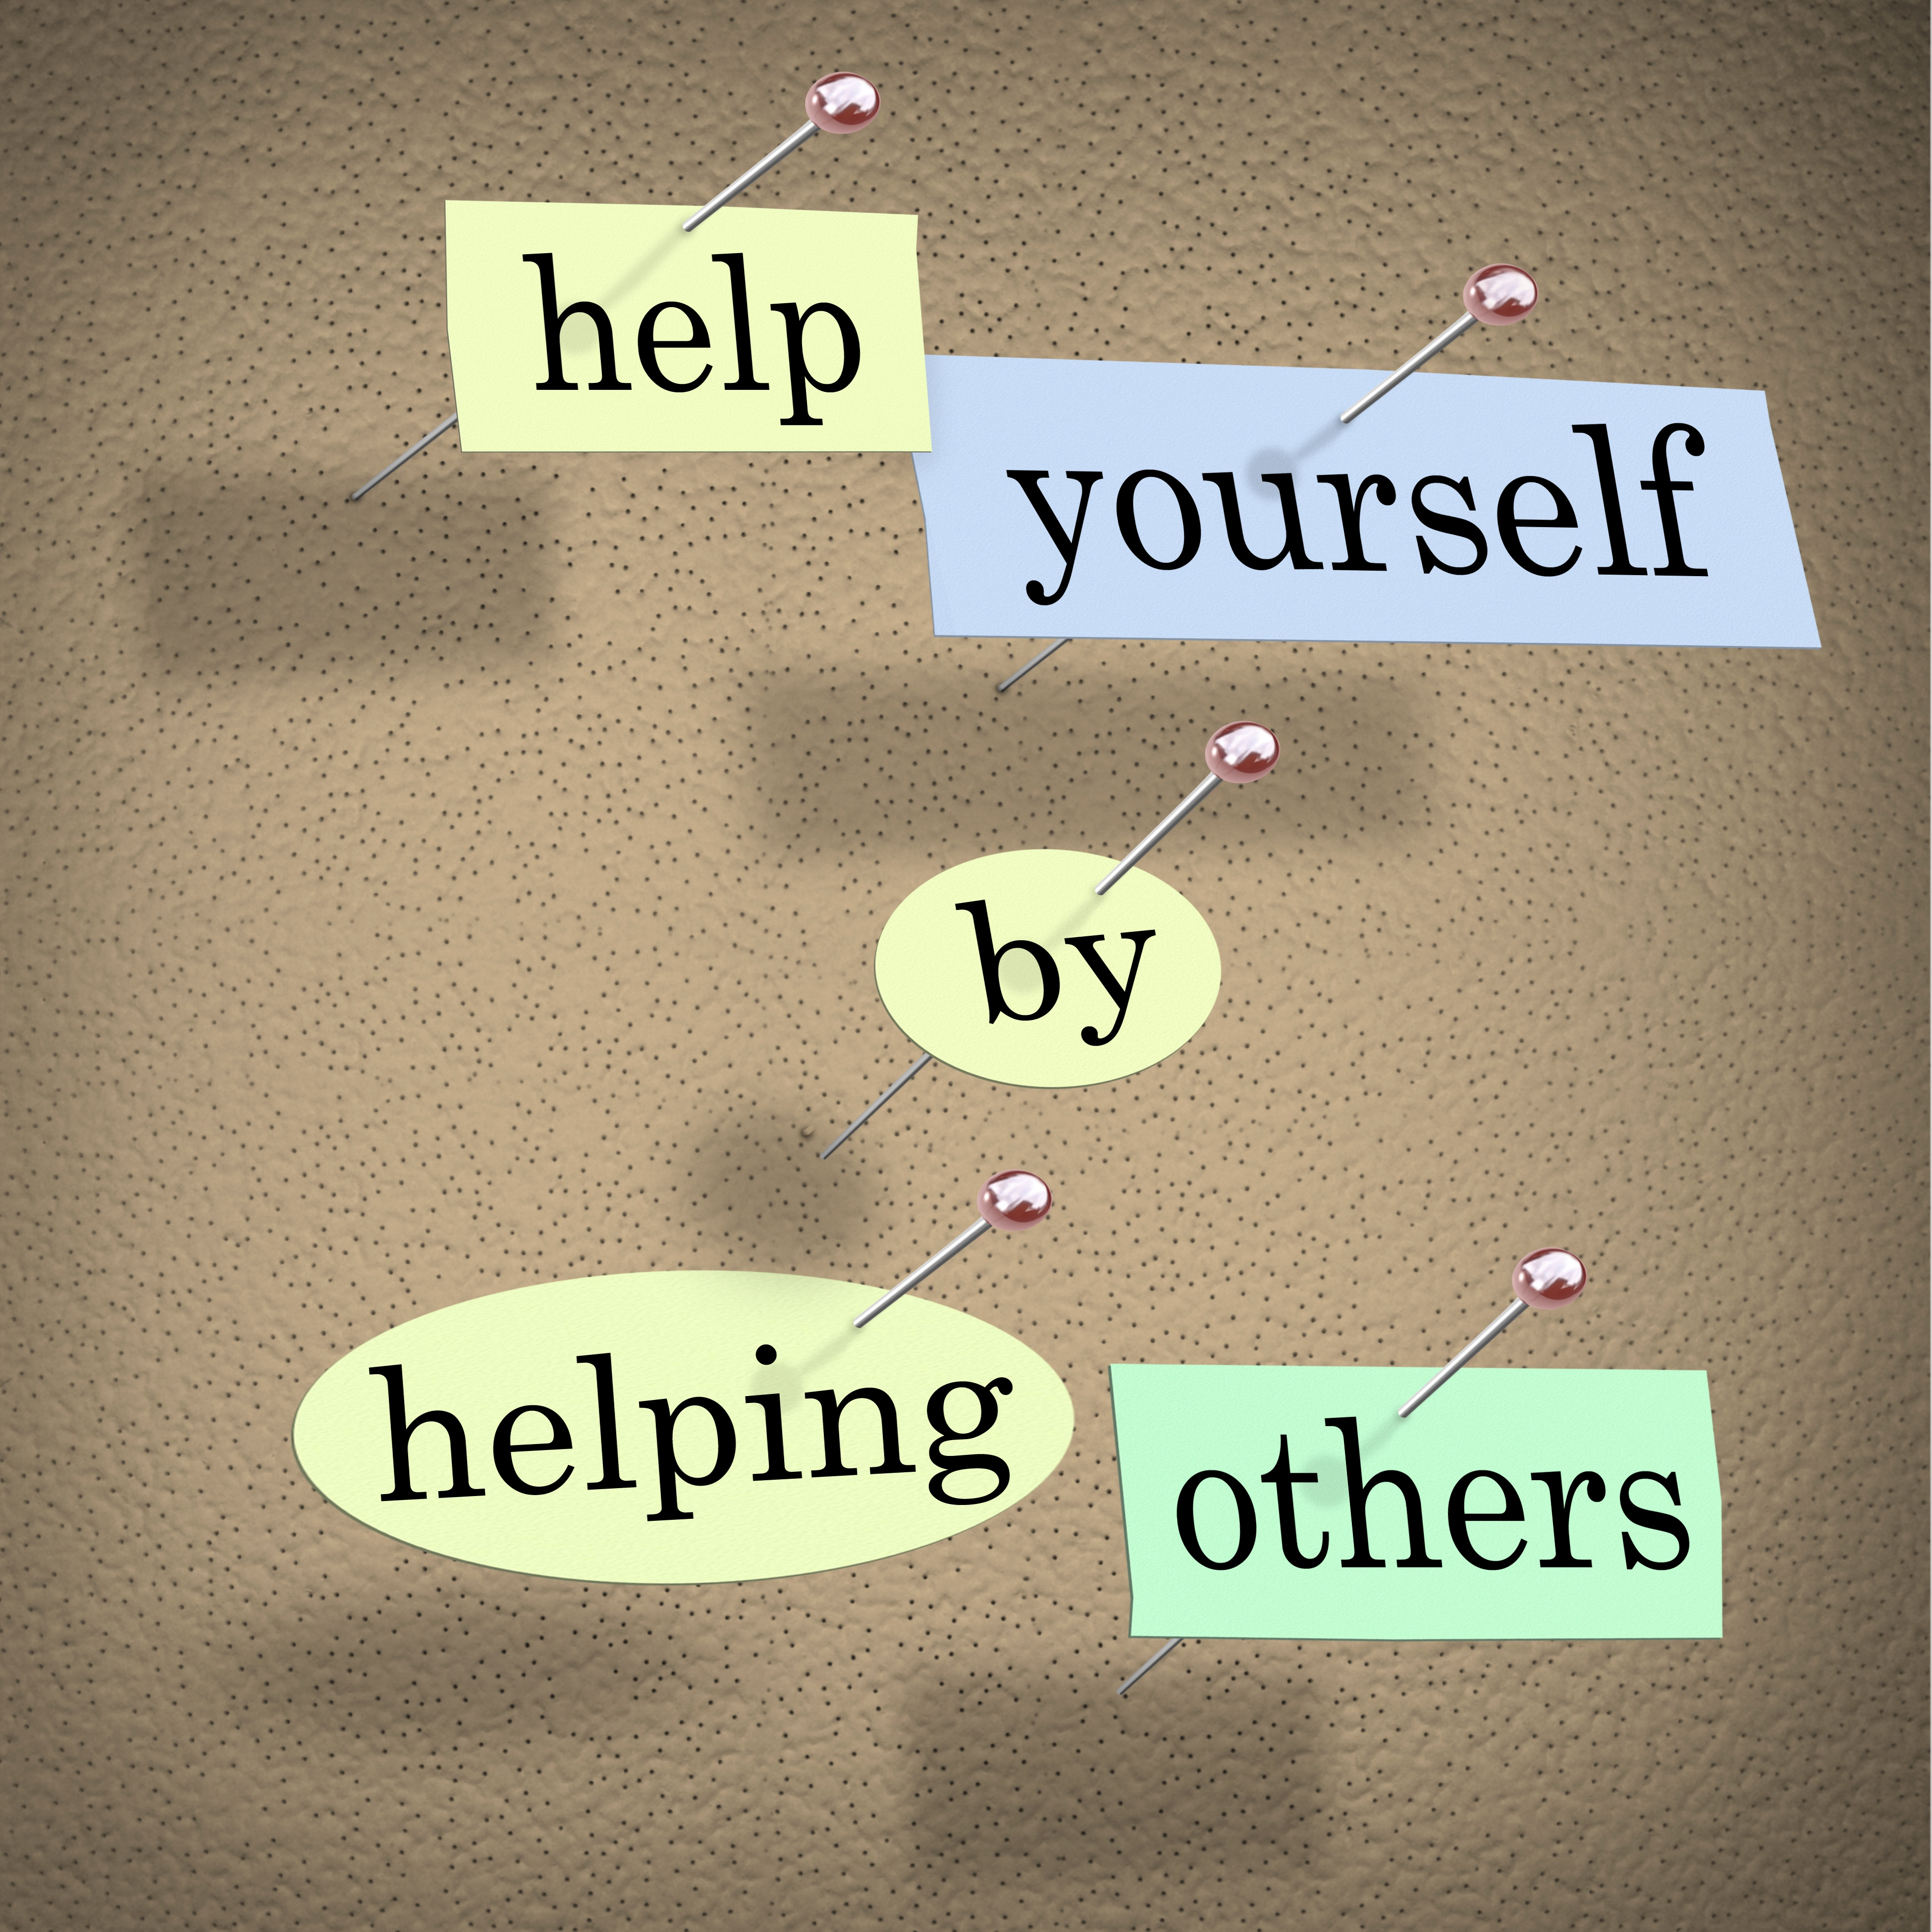 help-yourself-by-helping-others